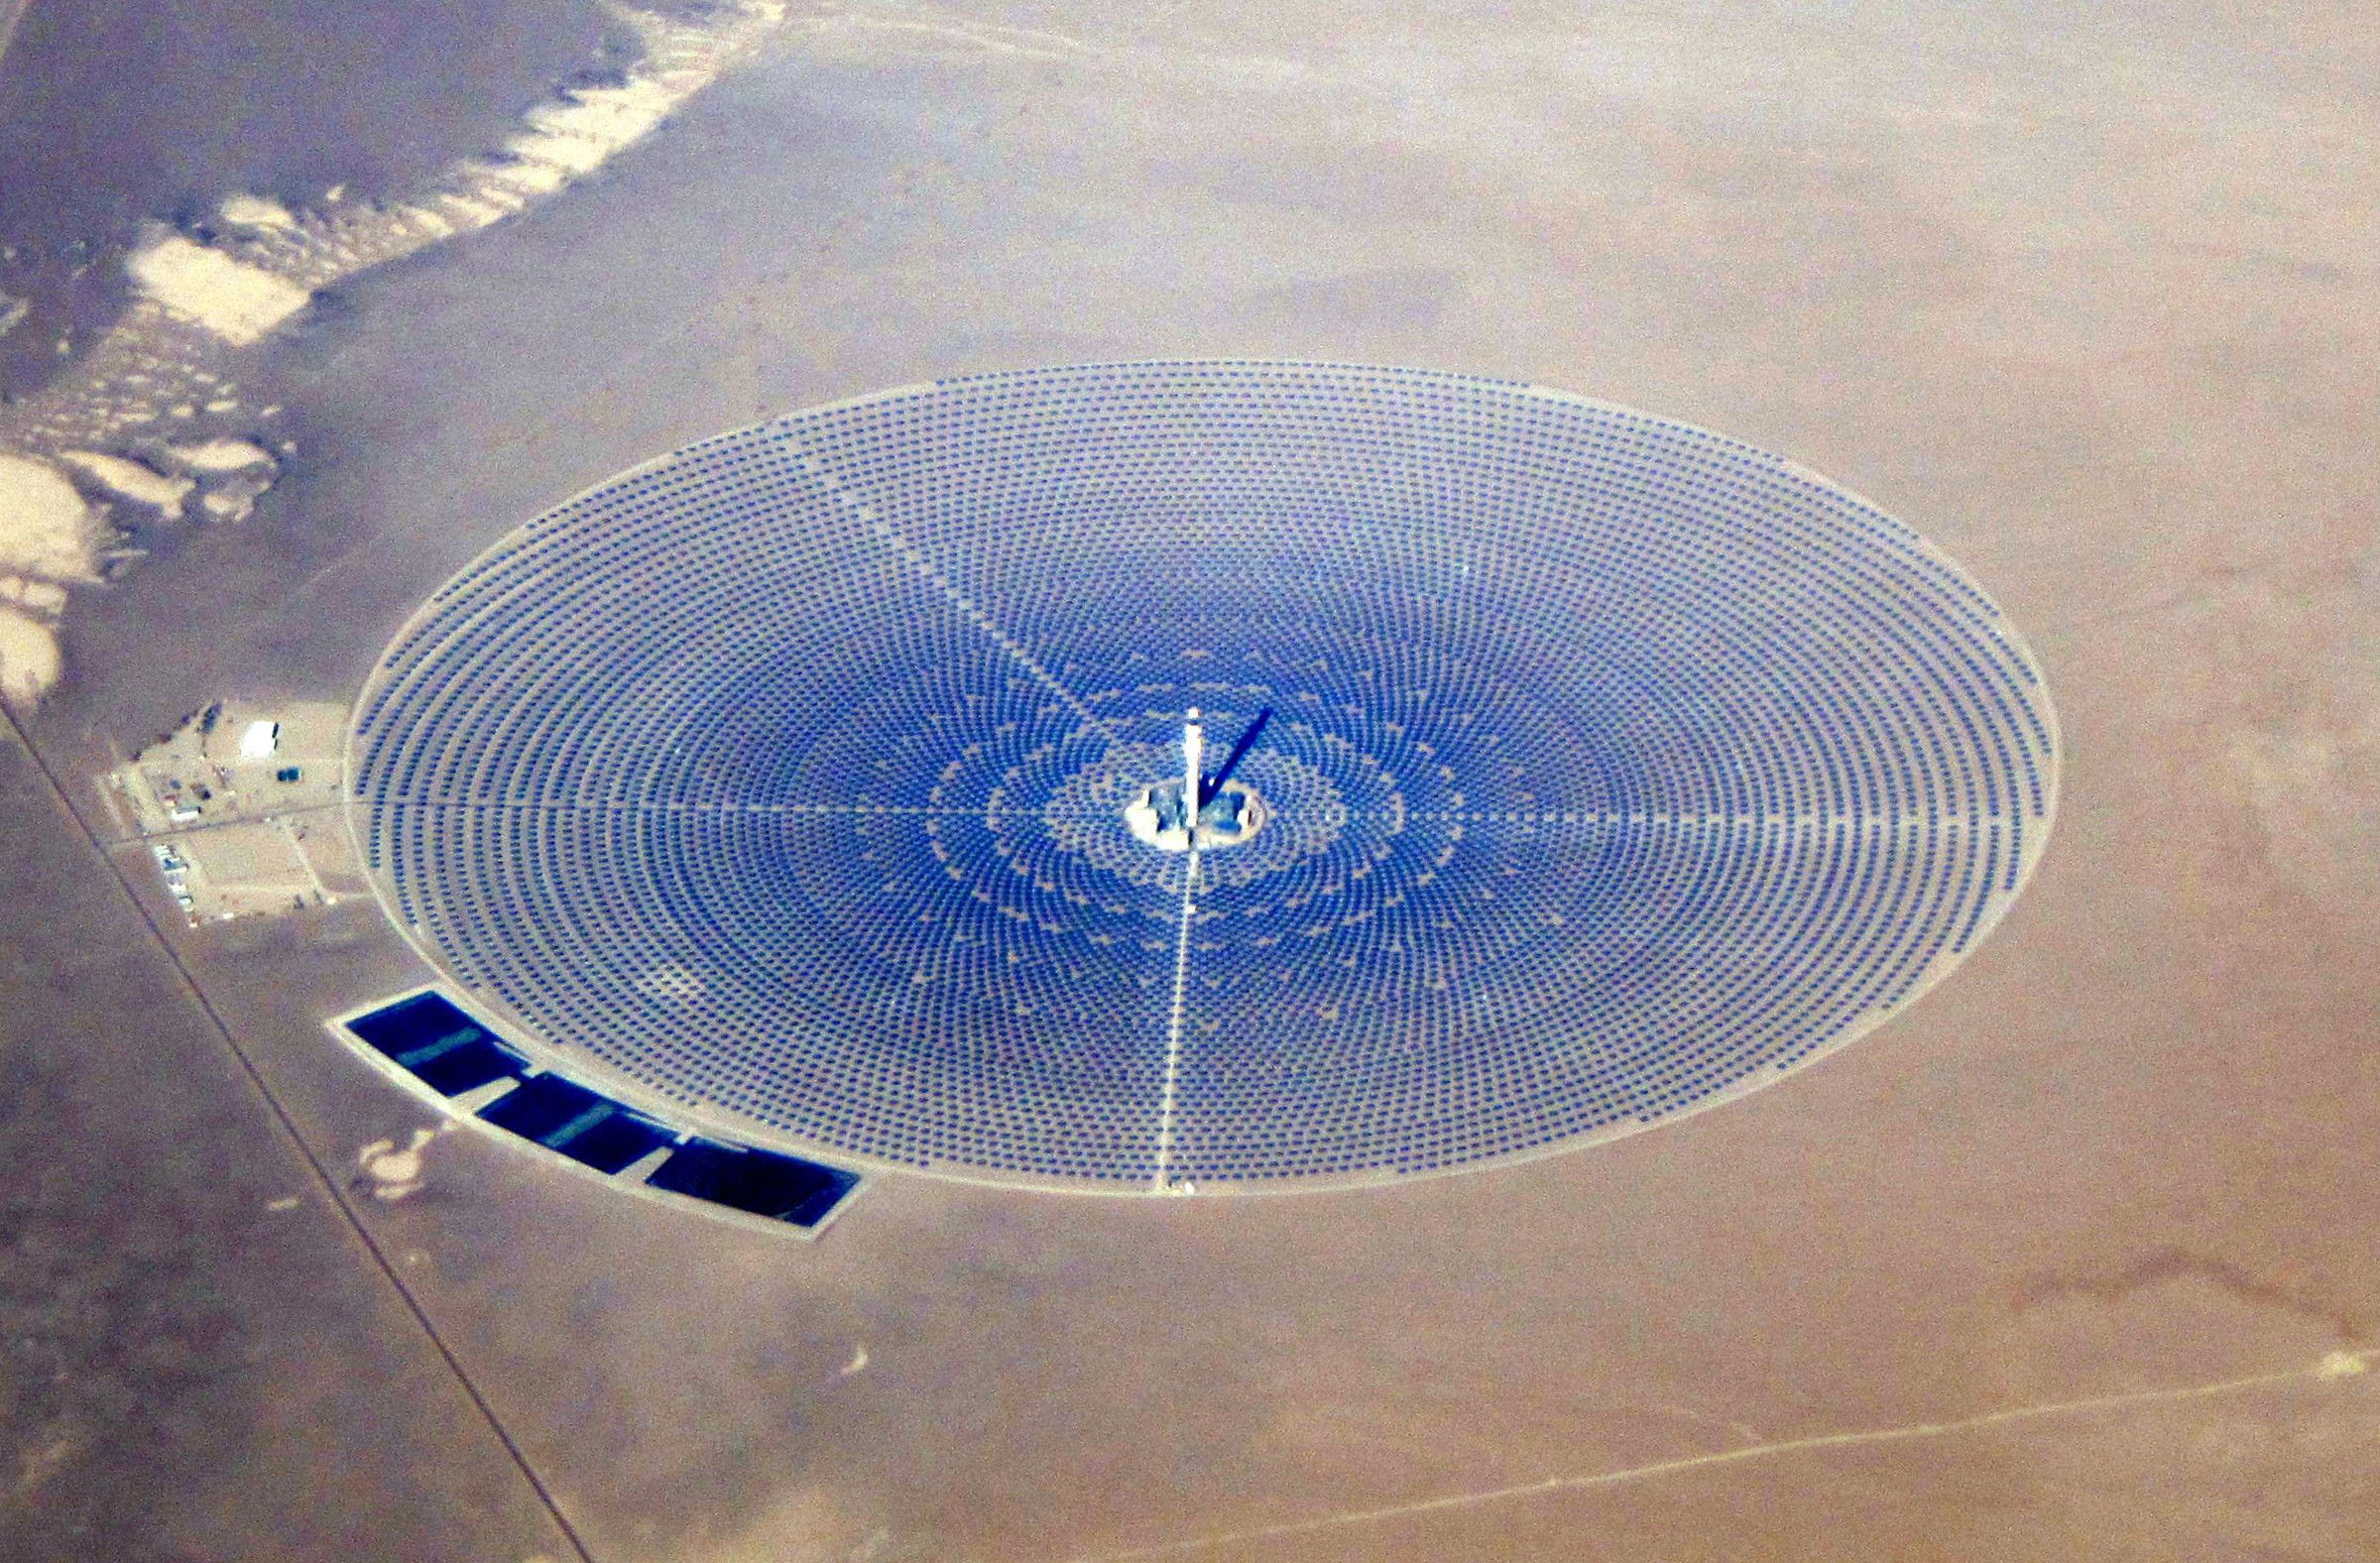 Crescent Dunes Solar Energy Project 2400 X 1576 R Infrastructureporn Power Towers Solar Farm Concentrated Solar Power